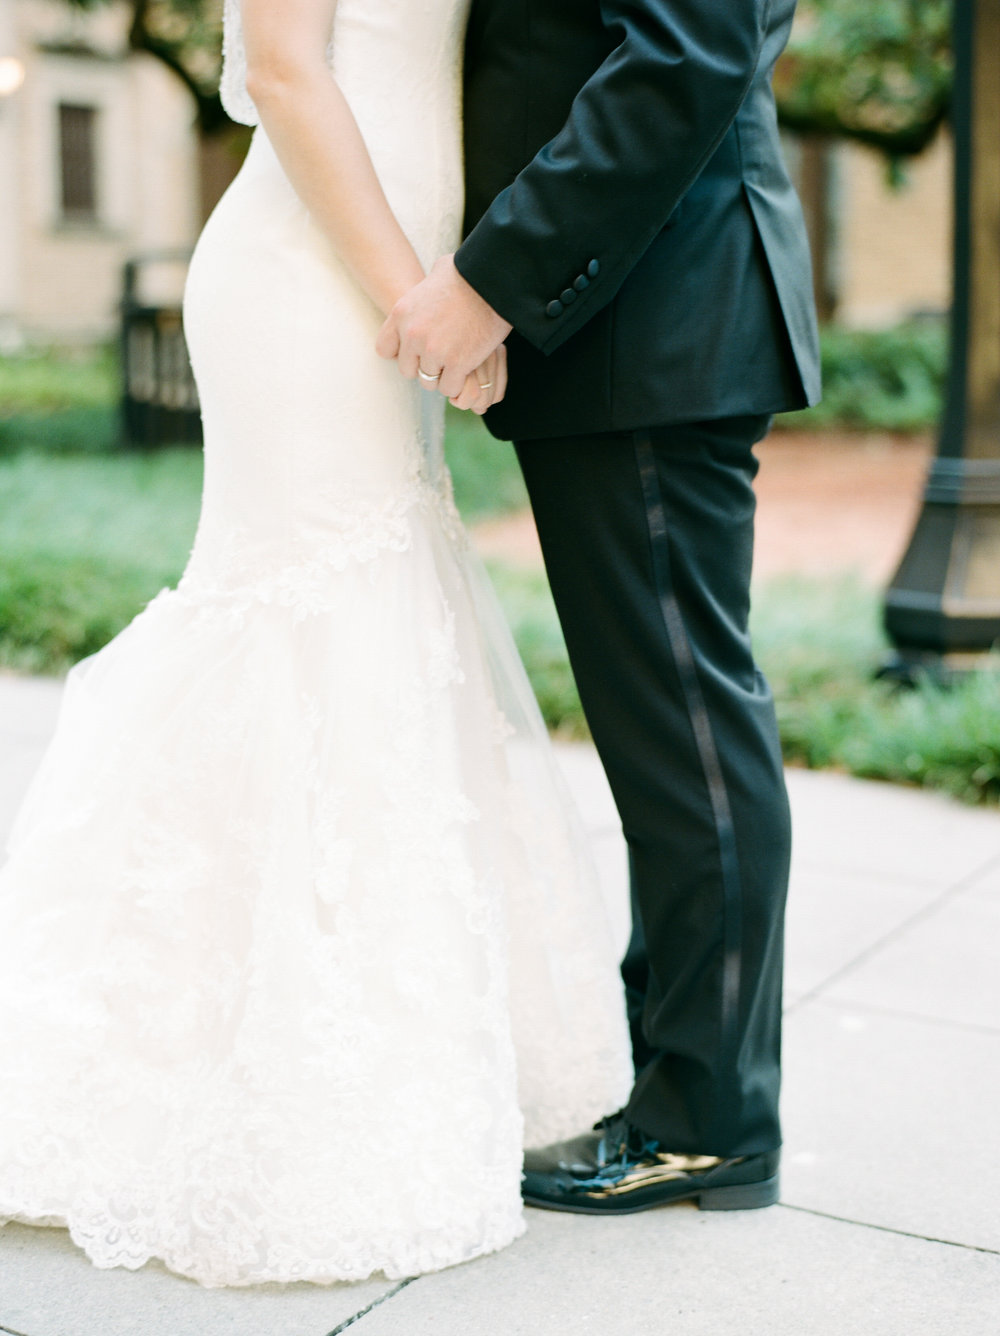 The-Knot-Texas-Fine-Art-Wedding-Film-Destination-Photographer-Houston-Austin-Dallas-New-Orleans-Julia-Ideson-Library-Event-Dana-Josh-Fernandez-Photograph-Top-Best-27.jpg